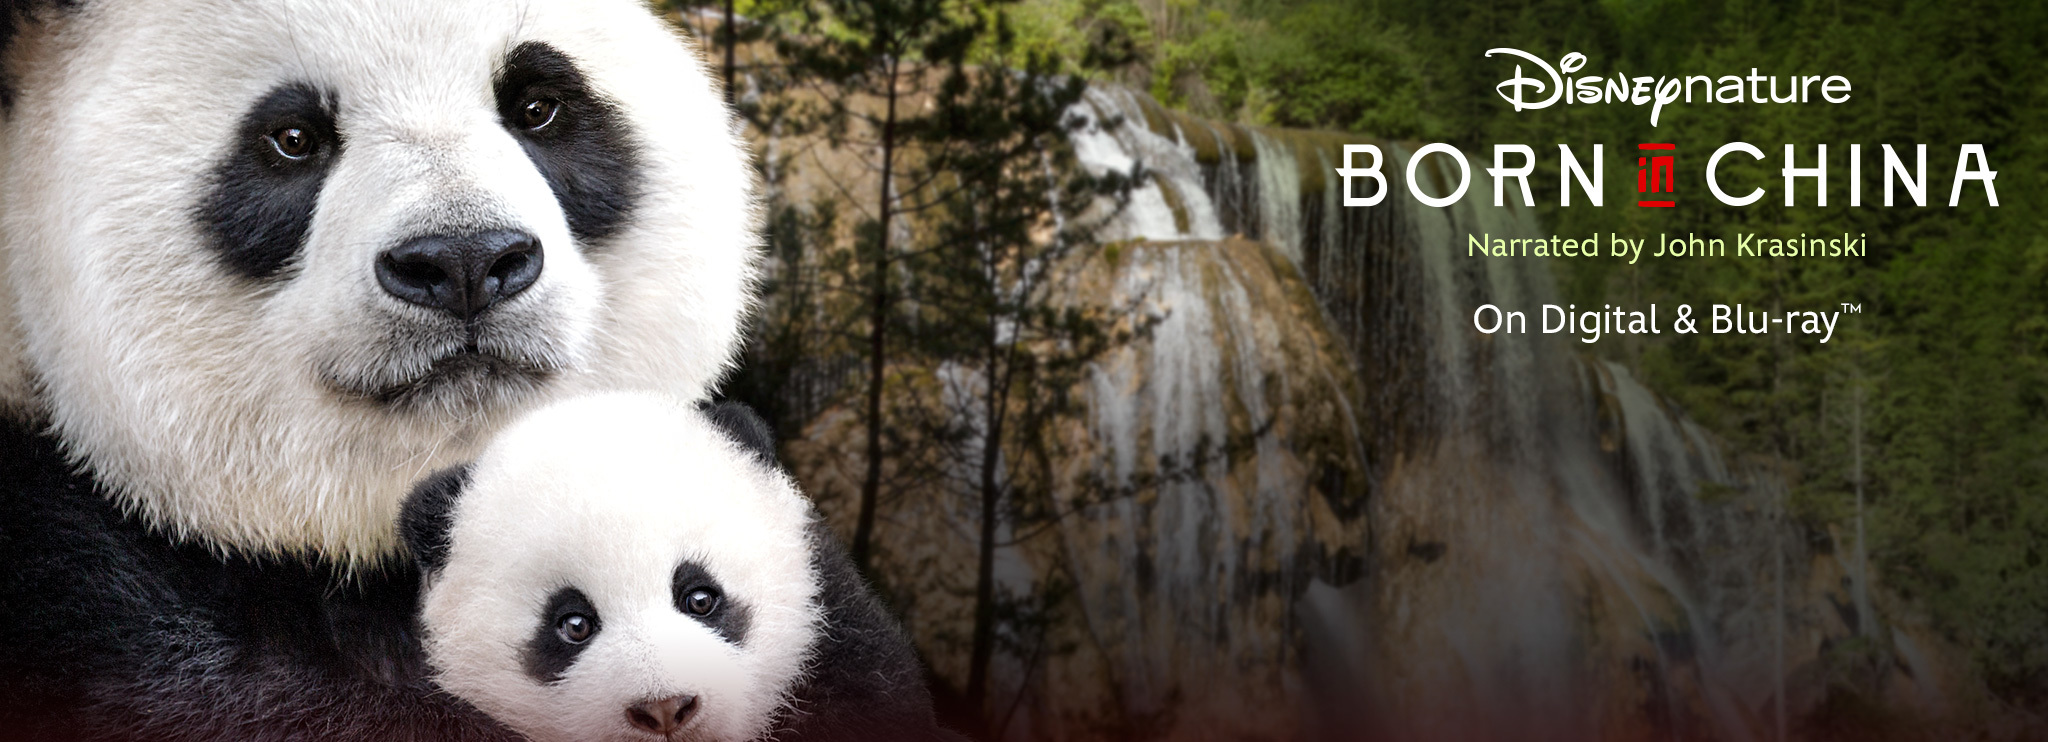 born in china official website disneynature